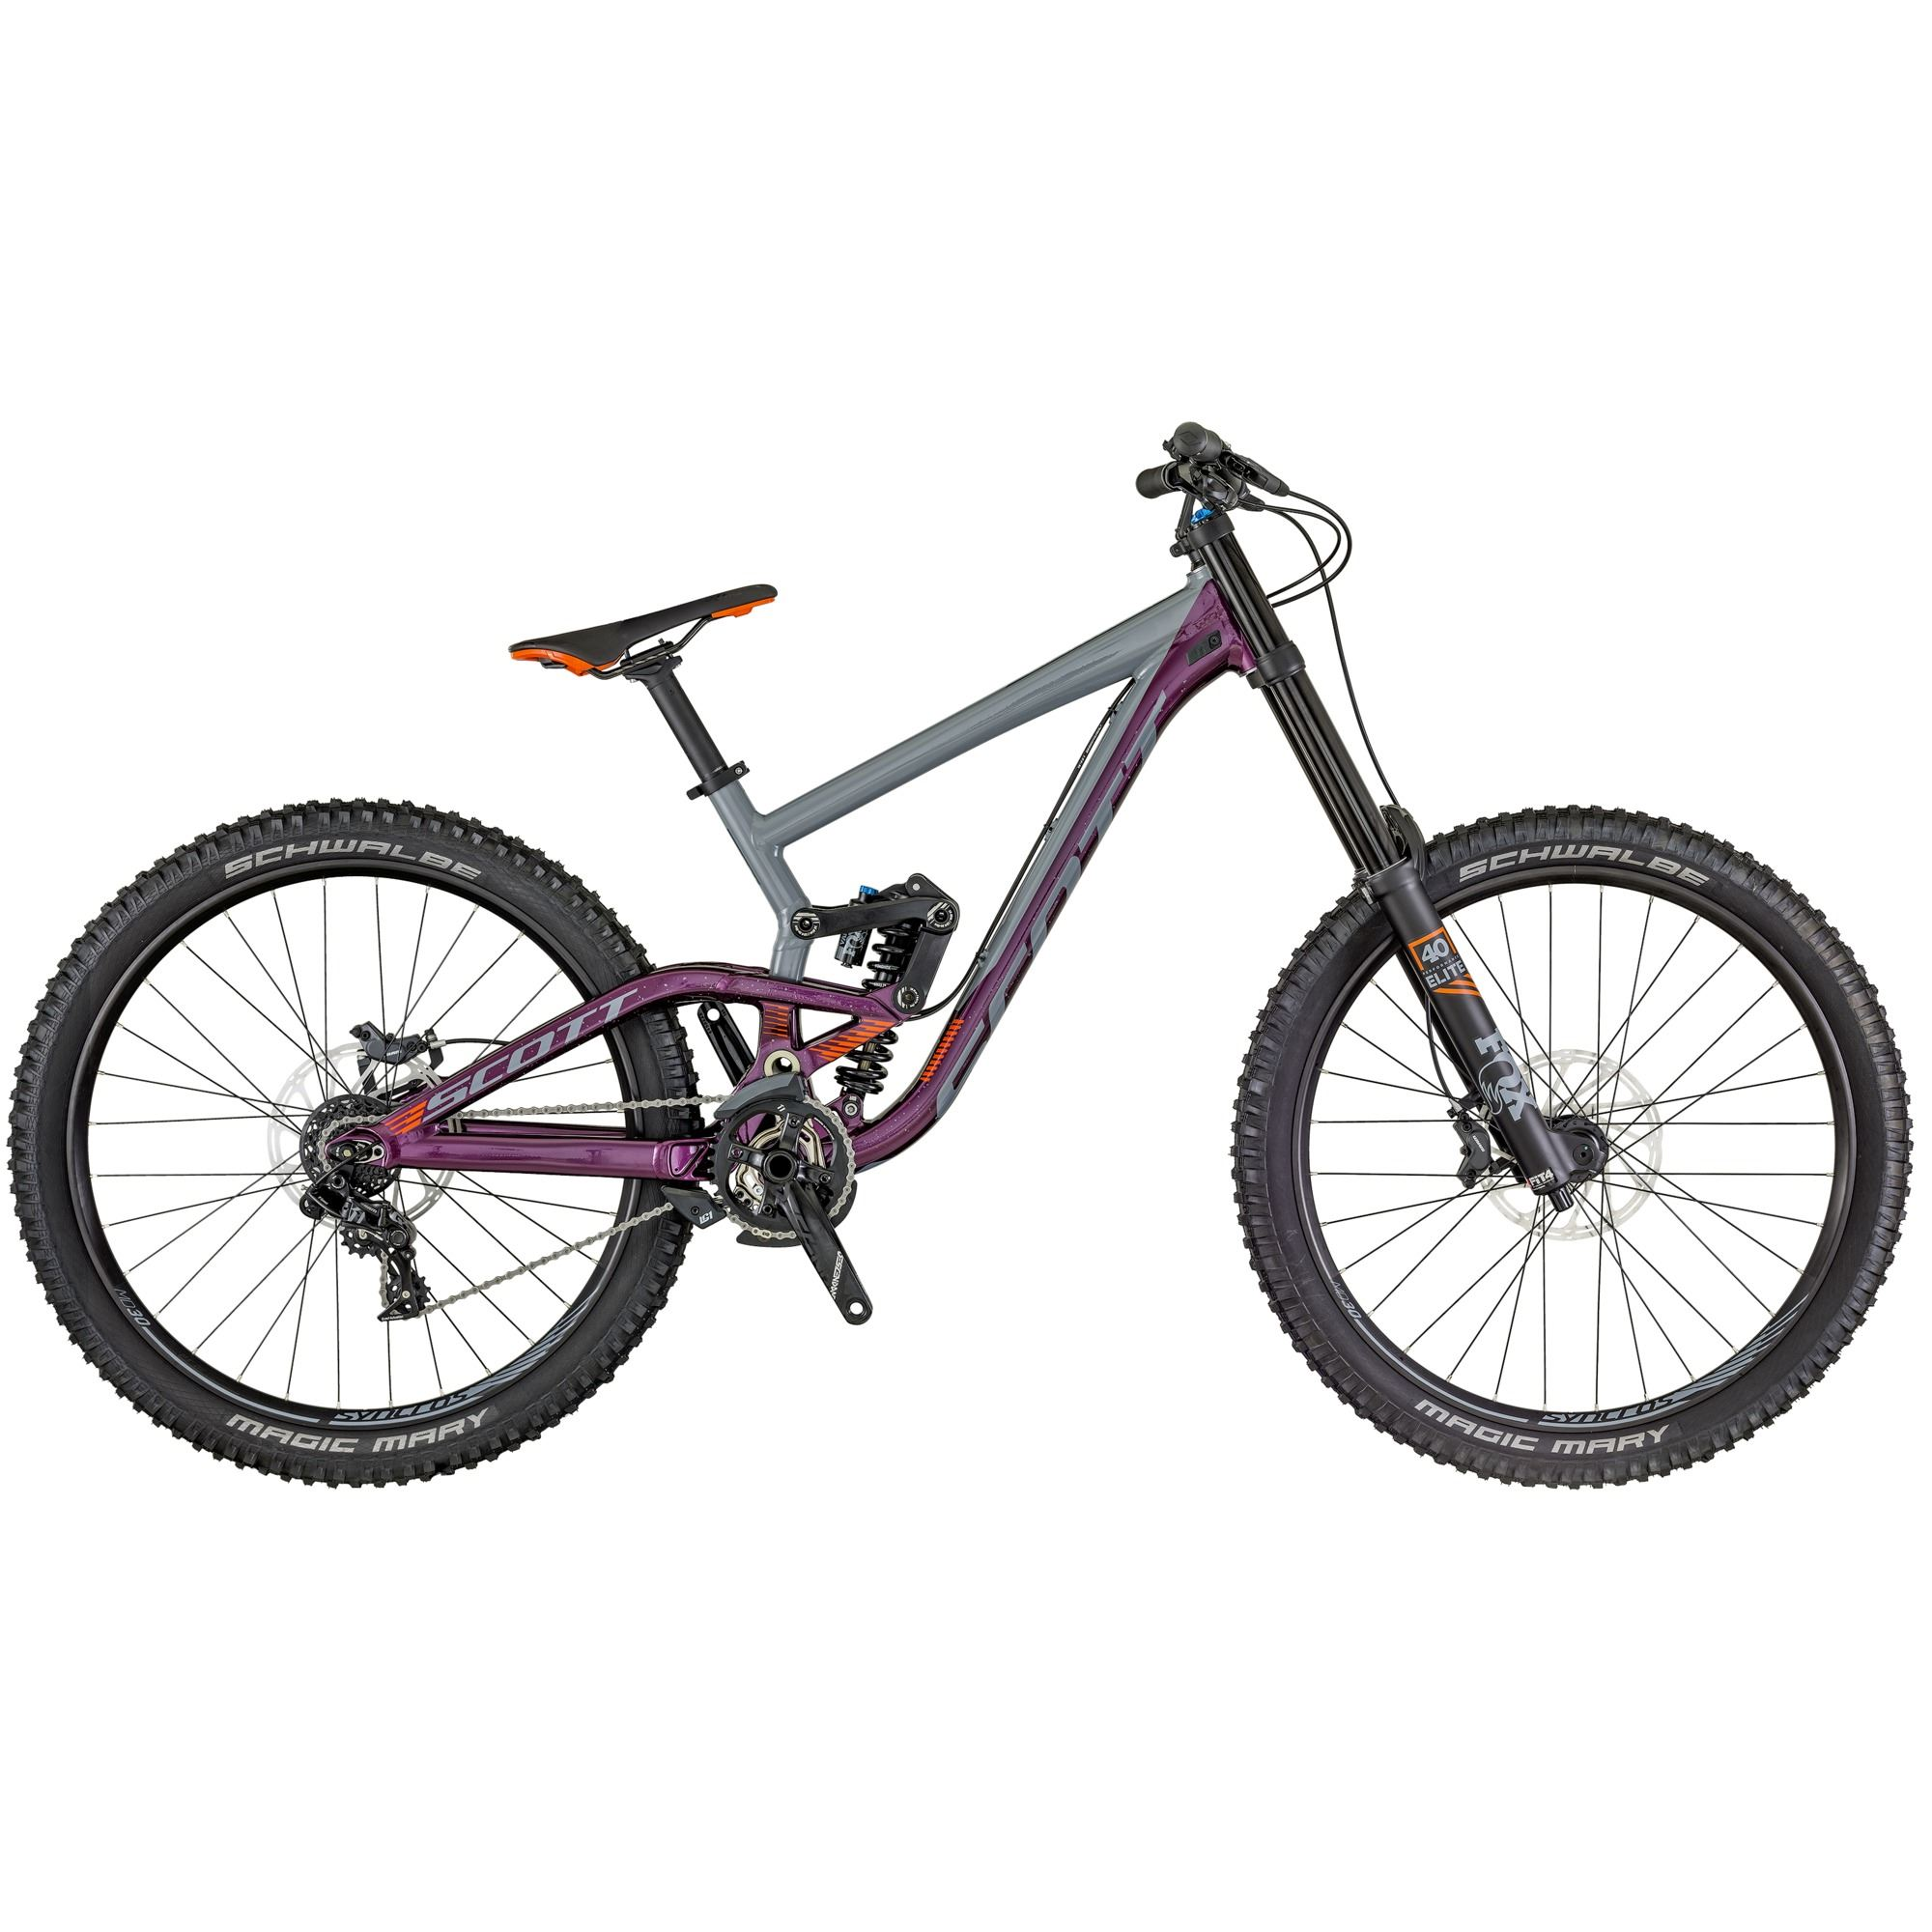 DH-bike | Scott Gambler 720 - Size L